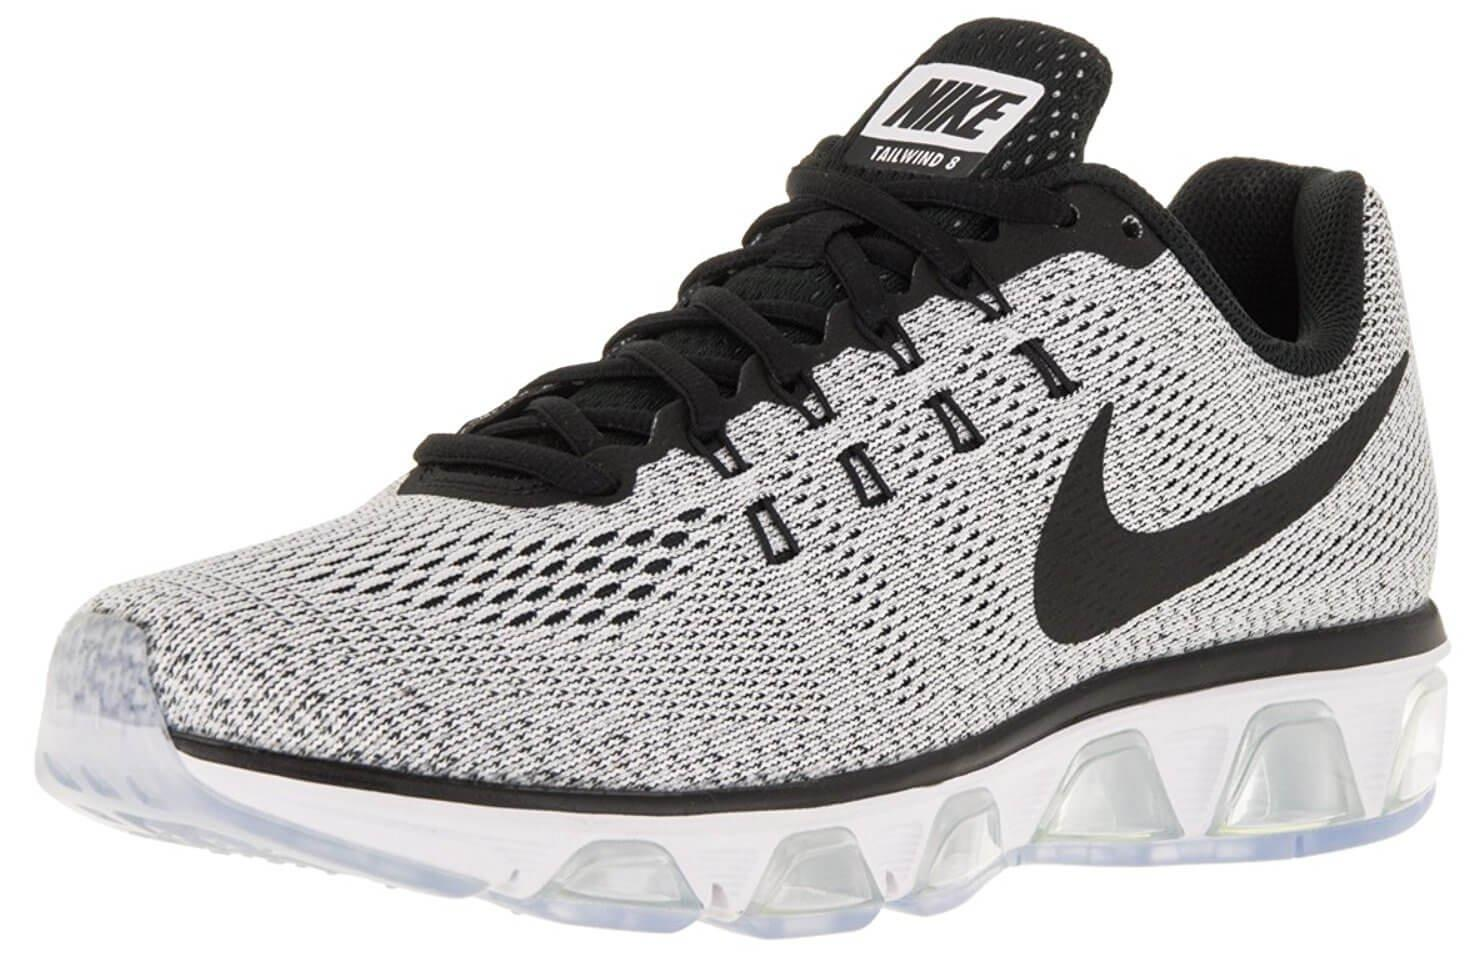 hot sale online 4065e becb7 Nike Air Max Tailwind 8 - To Buy or Not in May 2019